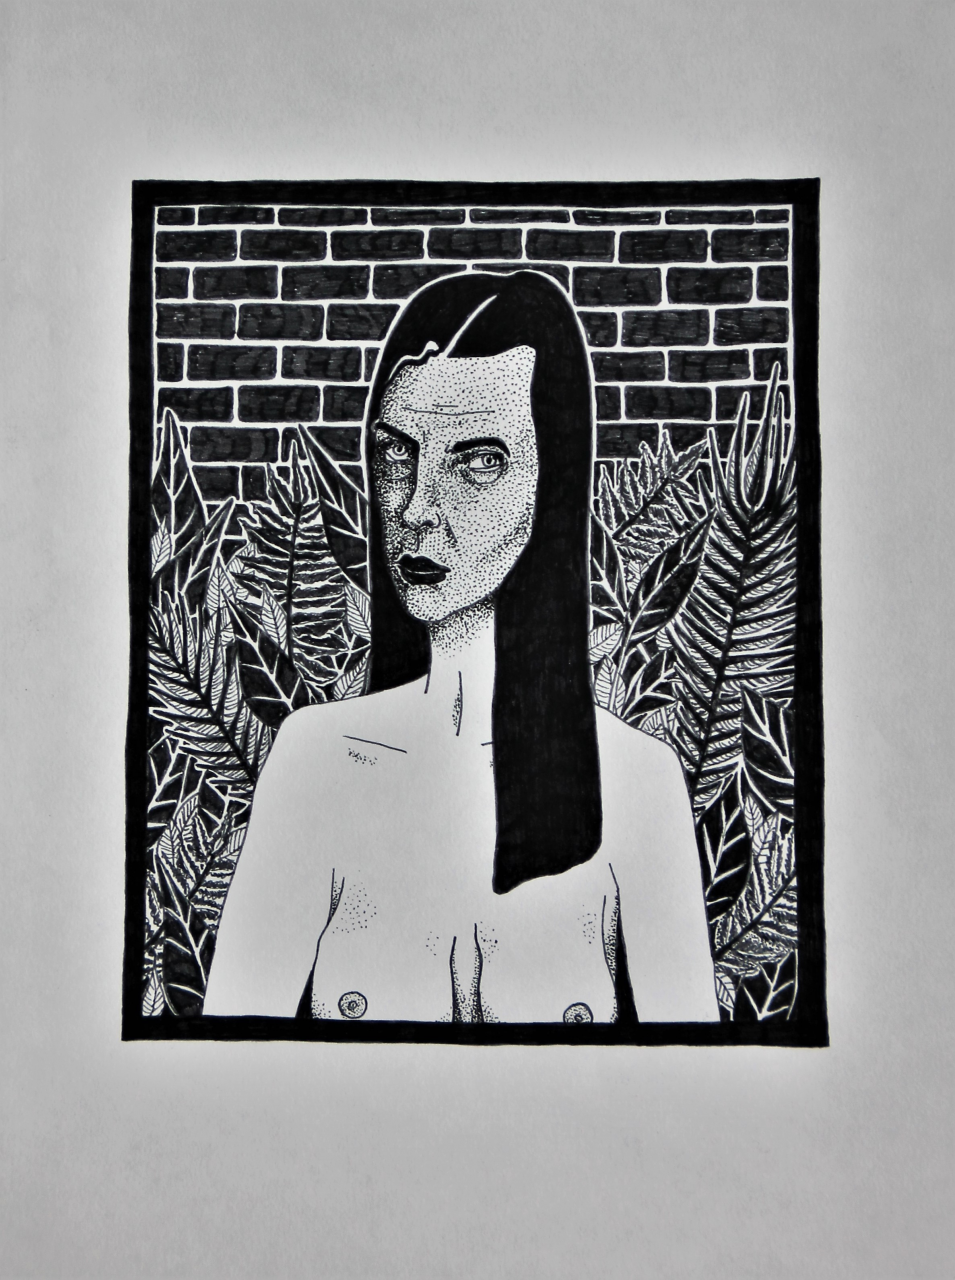 The Mother 21 x 30 cm, fineliner on paper, 2018.